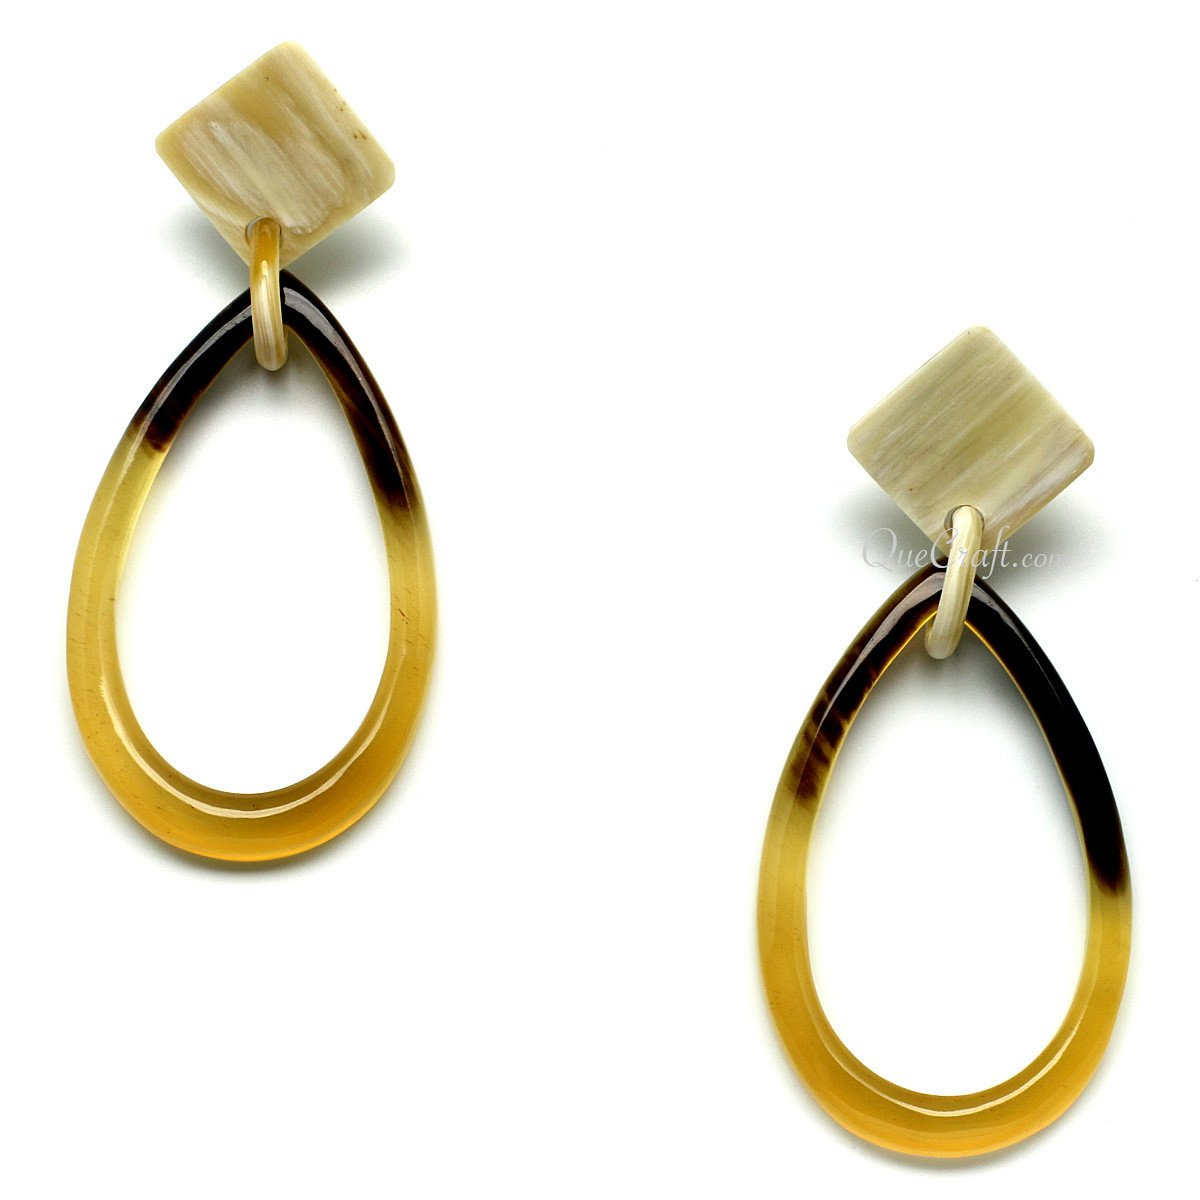 Horn Earrings #10143 - HORN.JEWELRY